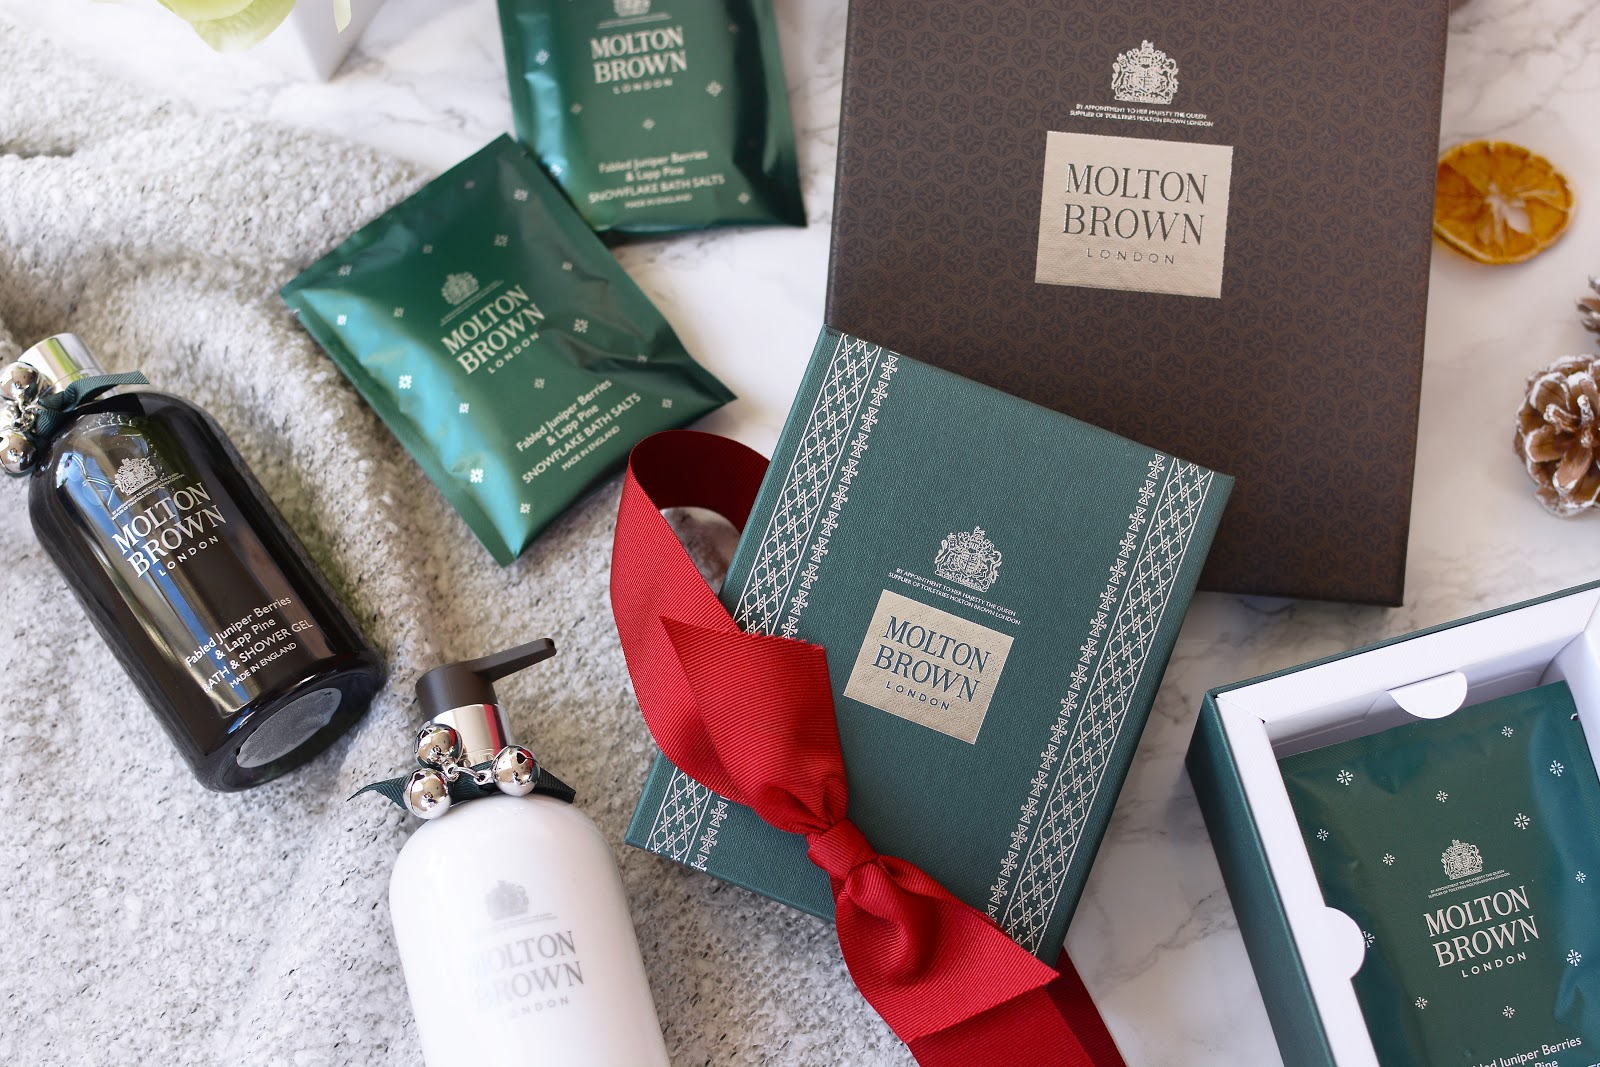 Molton Brown Fabled Juniper Berries & Lapp Pine